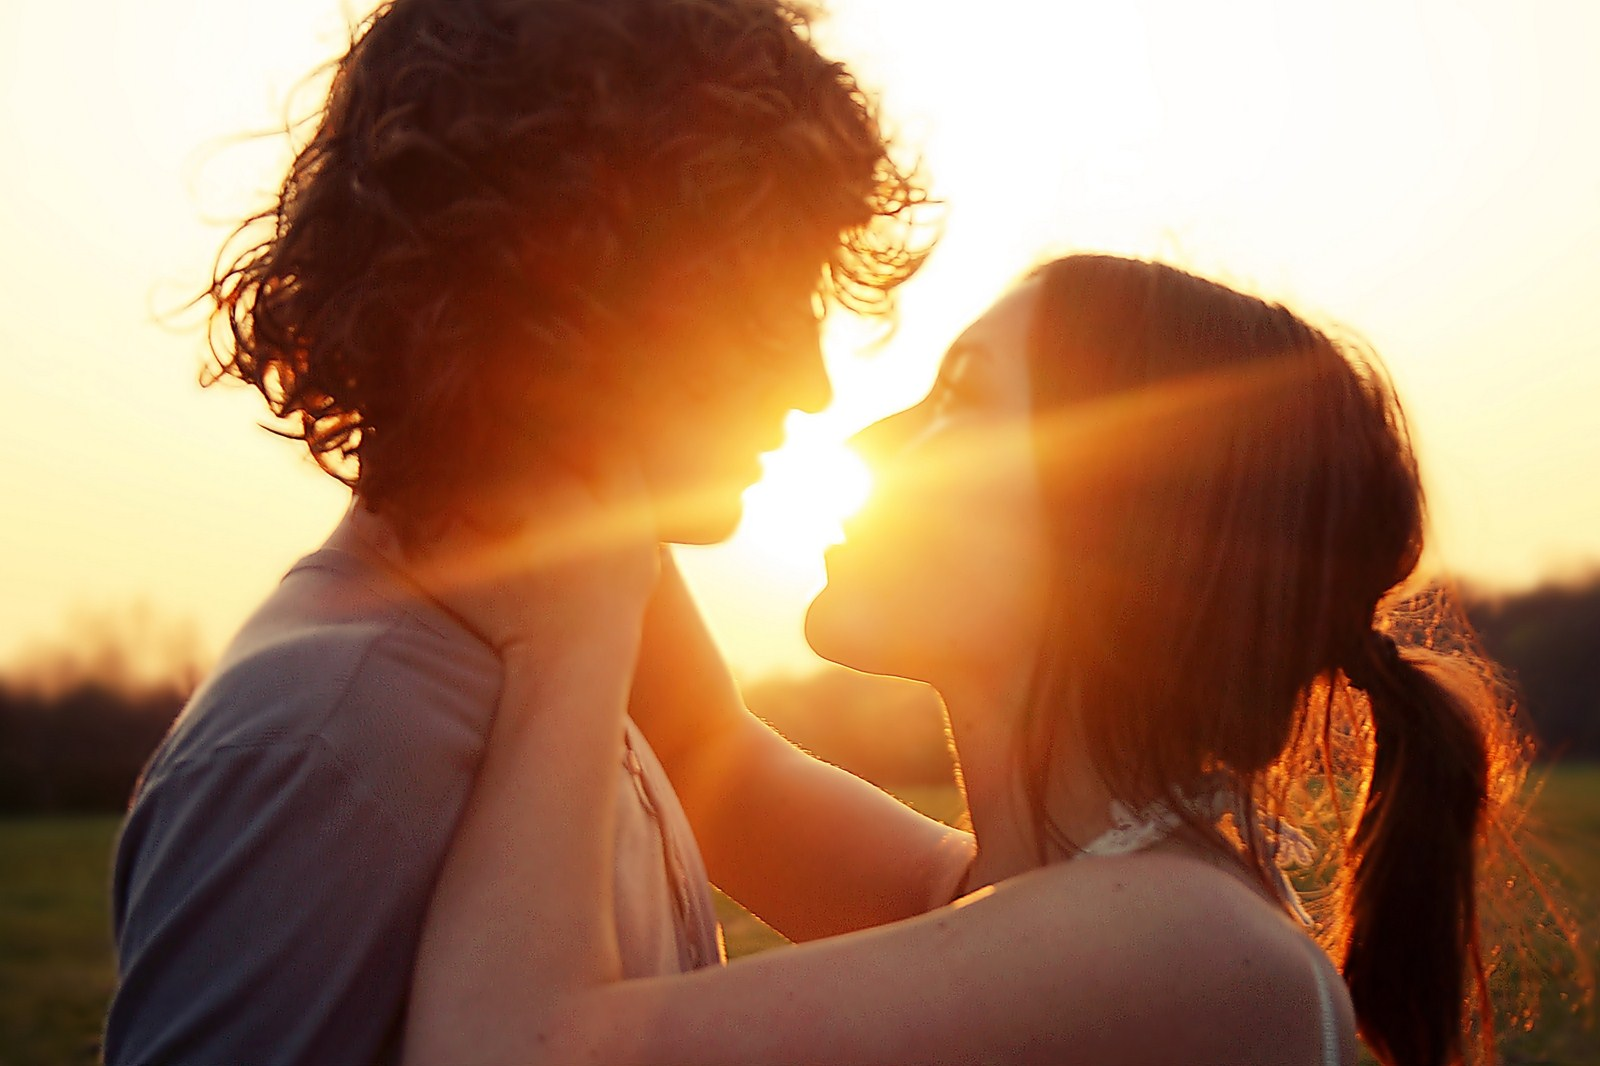 Sun Summer Love couple Magic Moment Mood Romance Photo HD Wallpaper Love Wallpapers Romantic ...